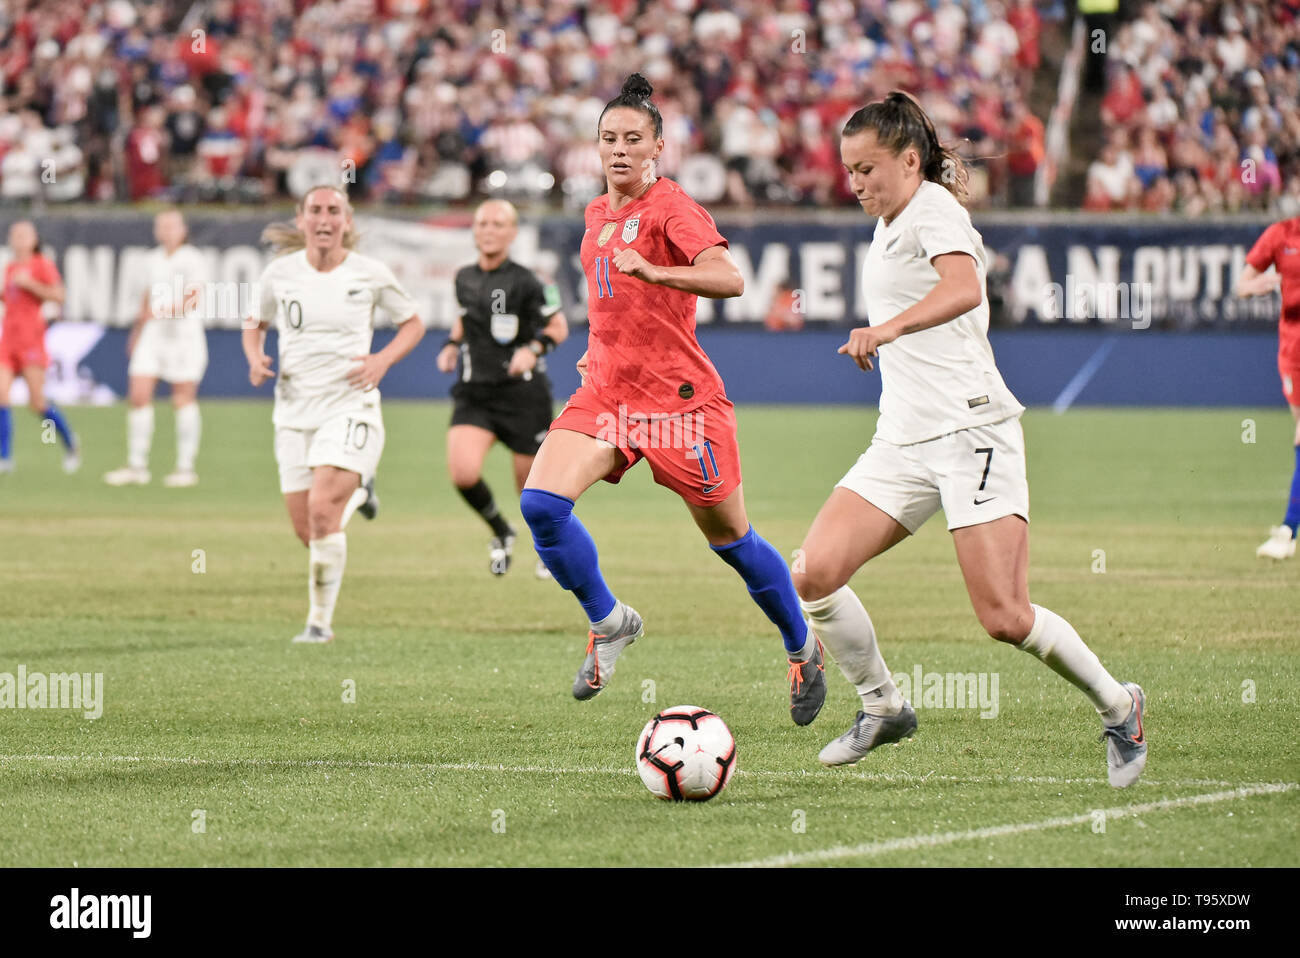 St Louis, USA. 16th May, 2019. New Zealand defender Ali Riley (7) races toward the goal while being followed by United States defender Ali Krieger (11) during the send off series as the United States Women's National Team hosted New Zealand at Busch Stadium in St. Louis City, MO Ulreich/CSM/Alamy Live News - Stock Image